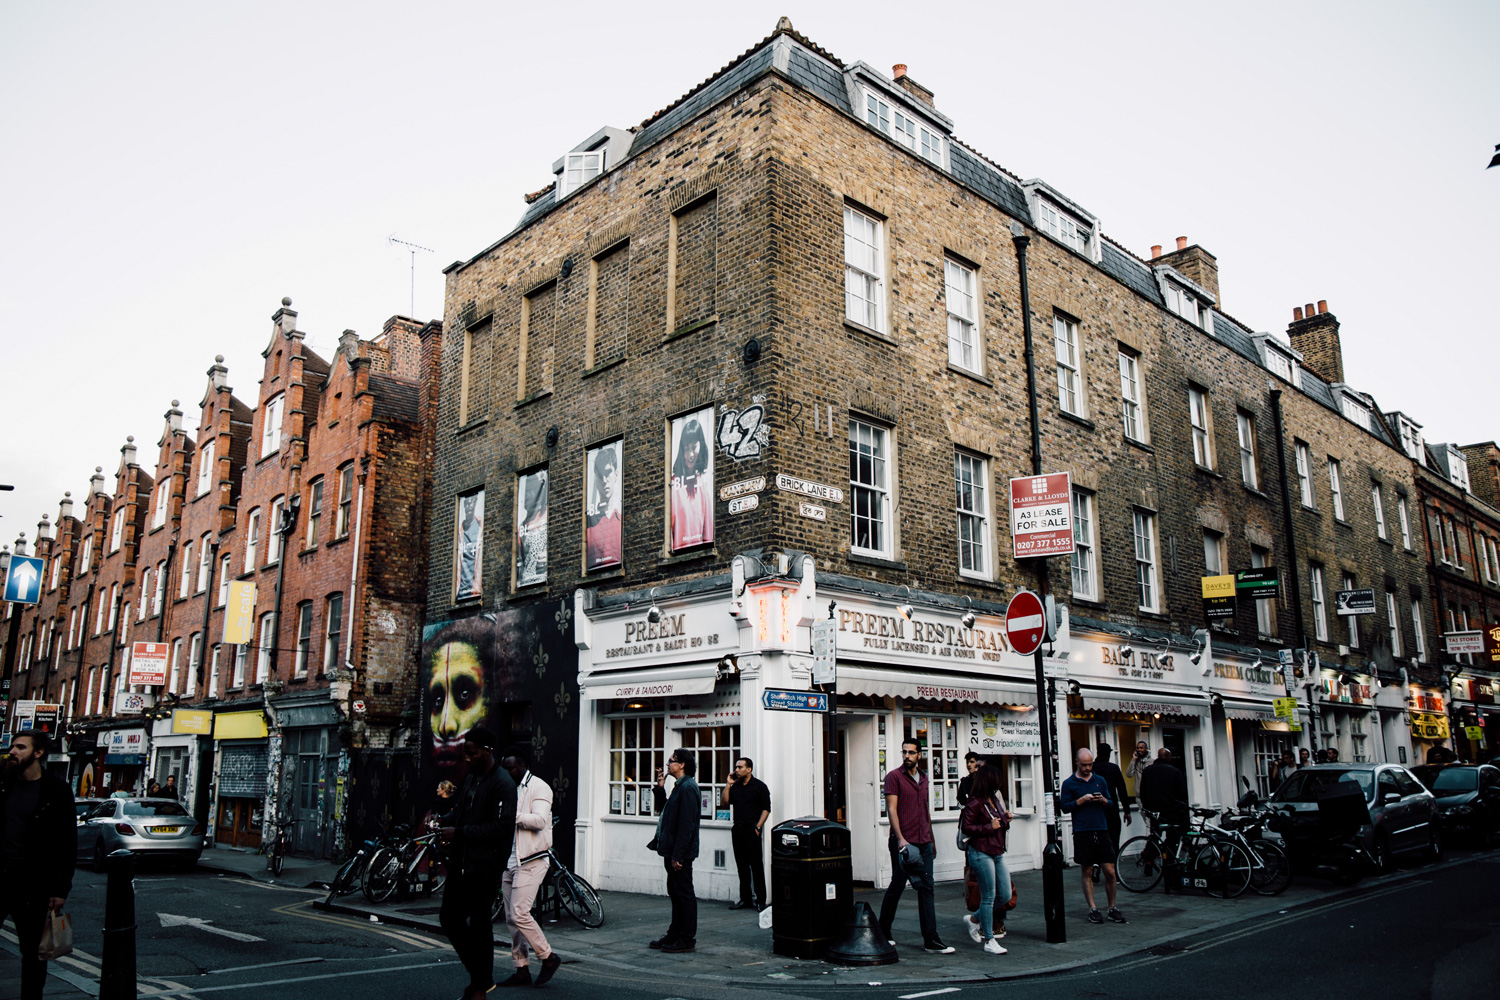 le quartier cool de Brick Lane